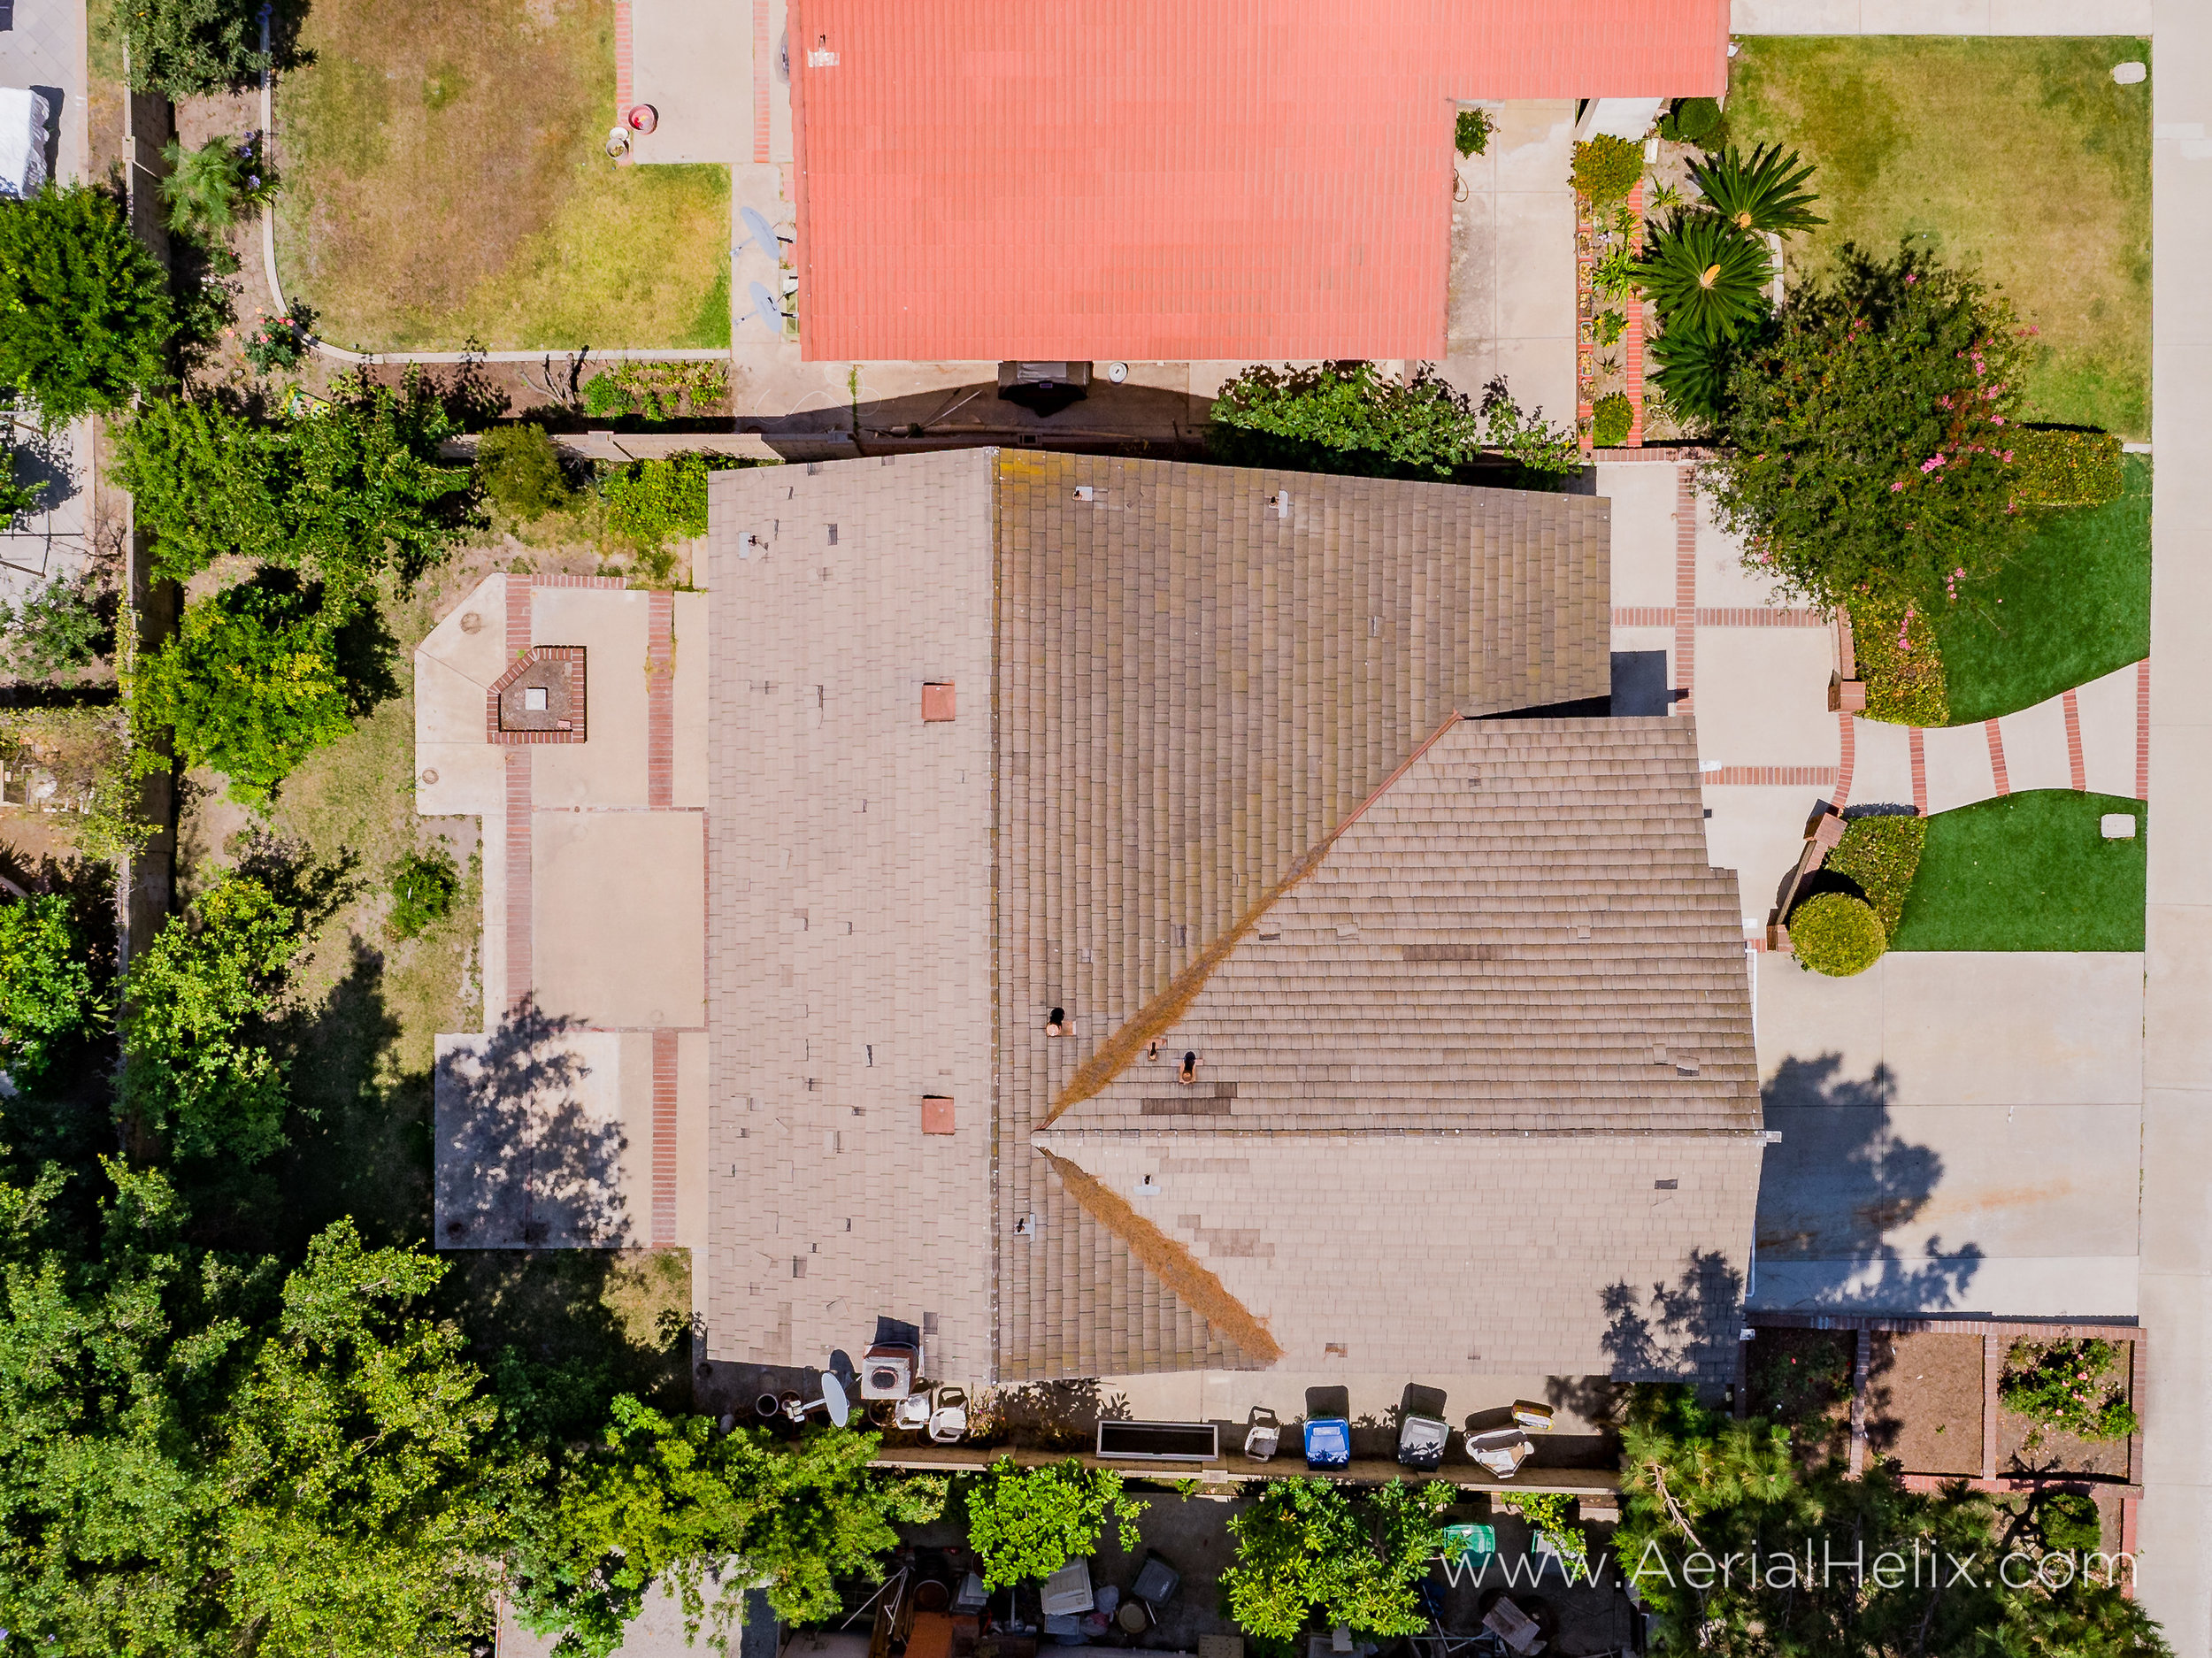 HELIX - Pecan St. - Real Estate Aerial Photographer-10.jpg